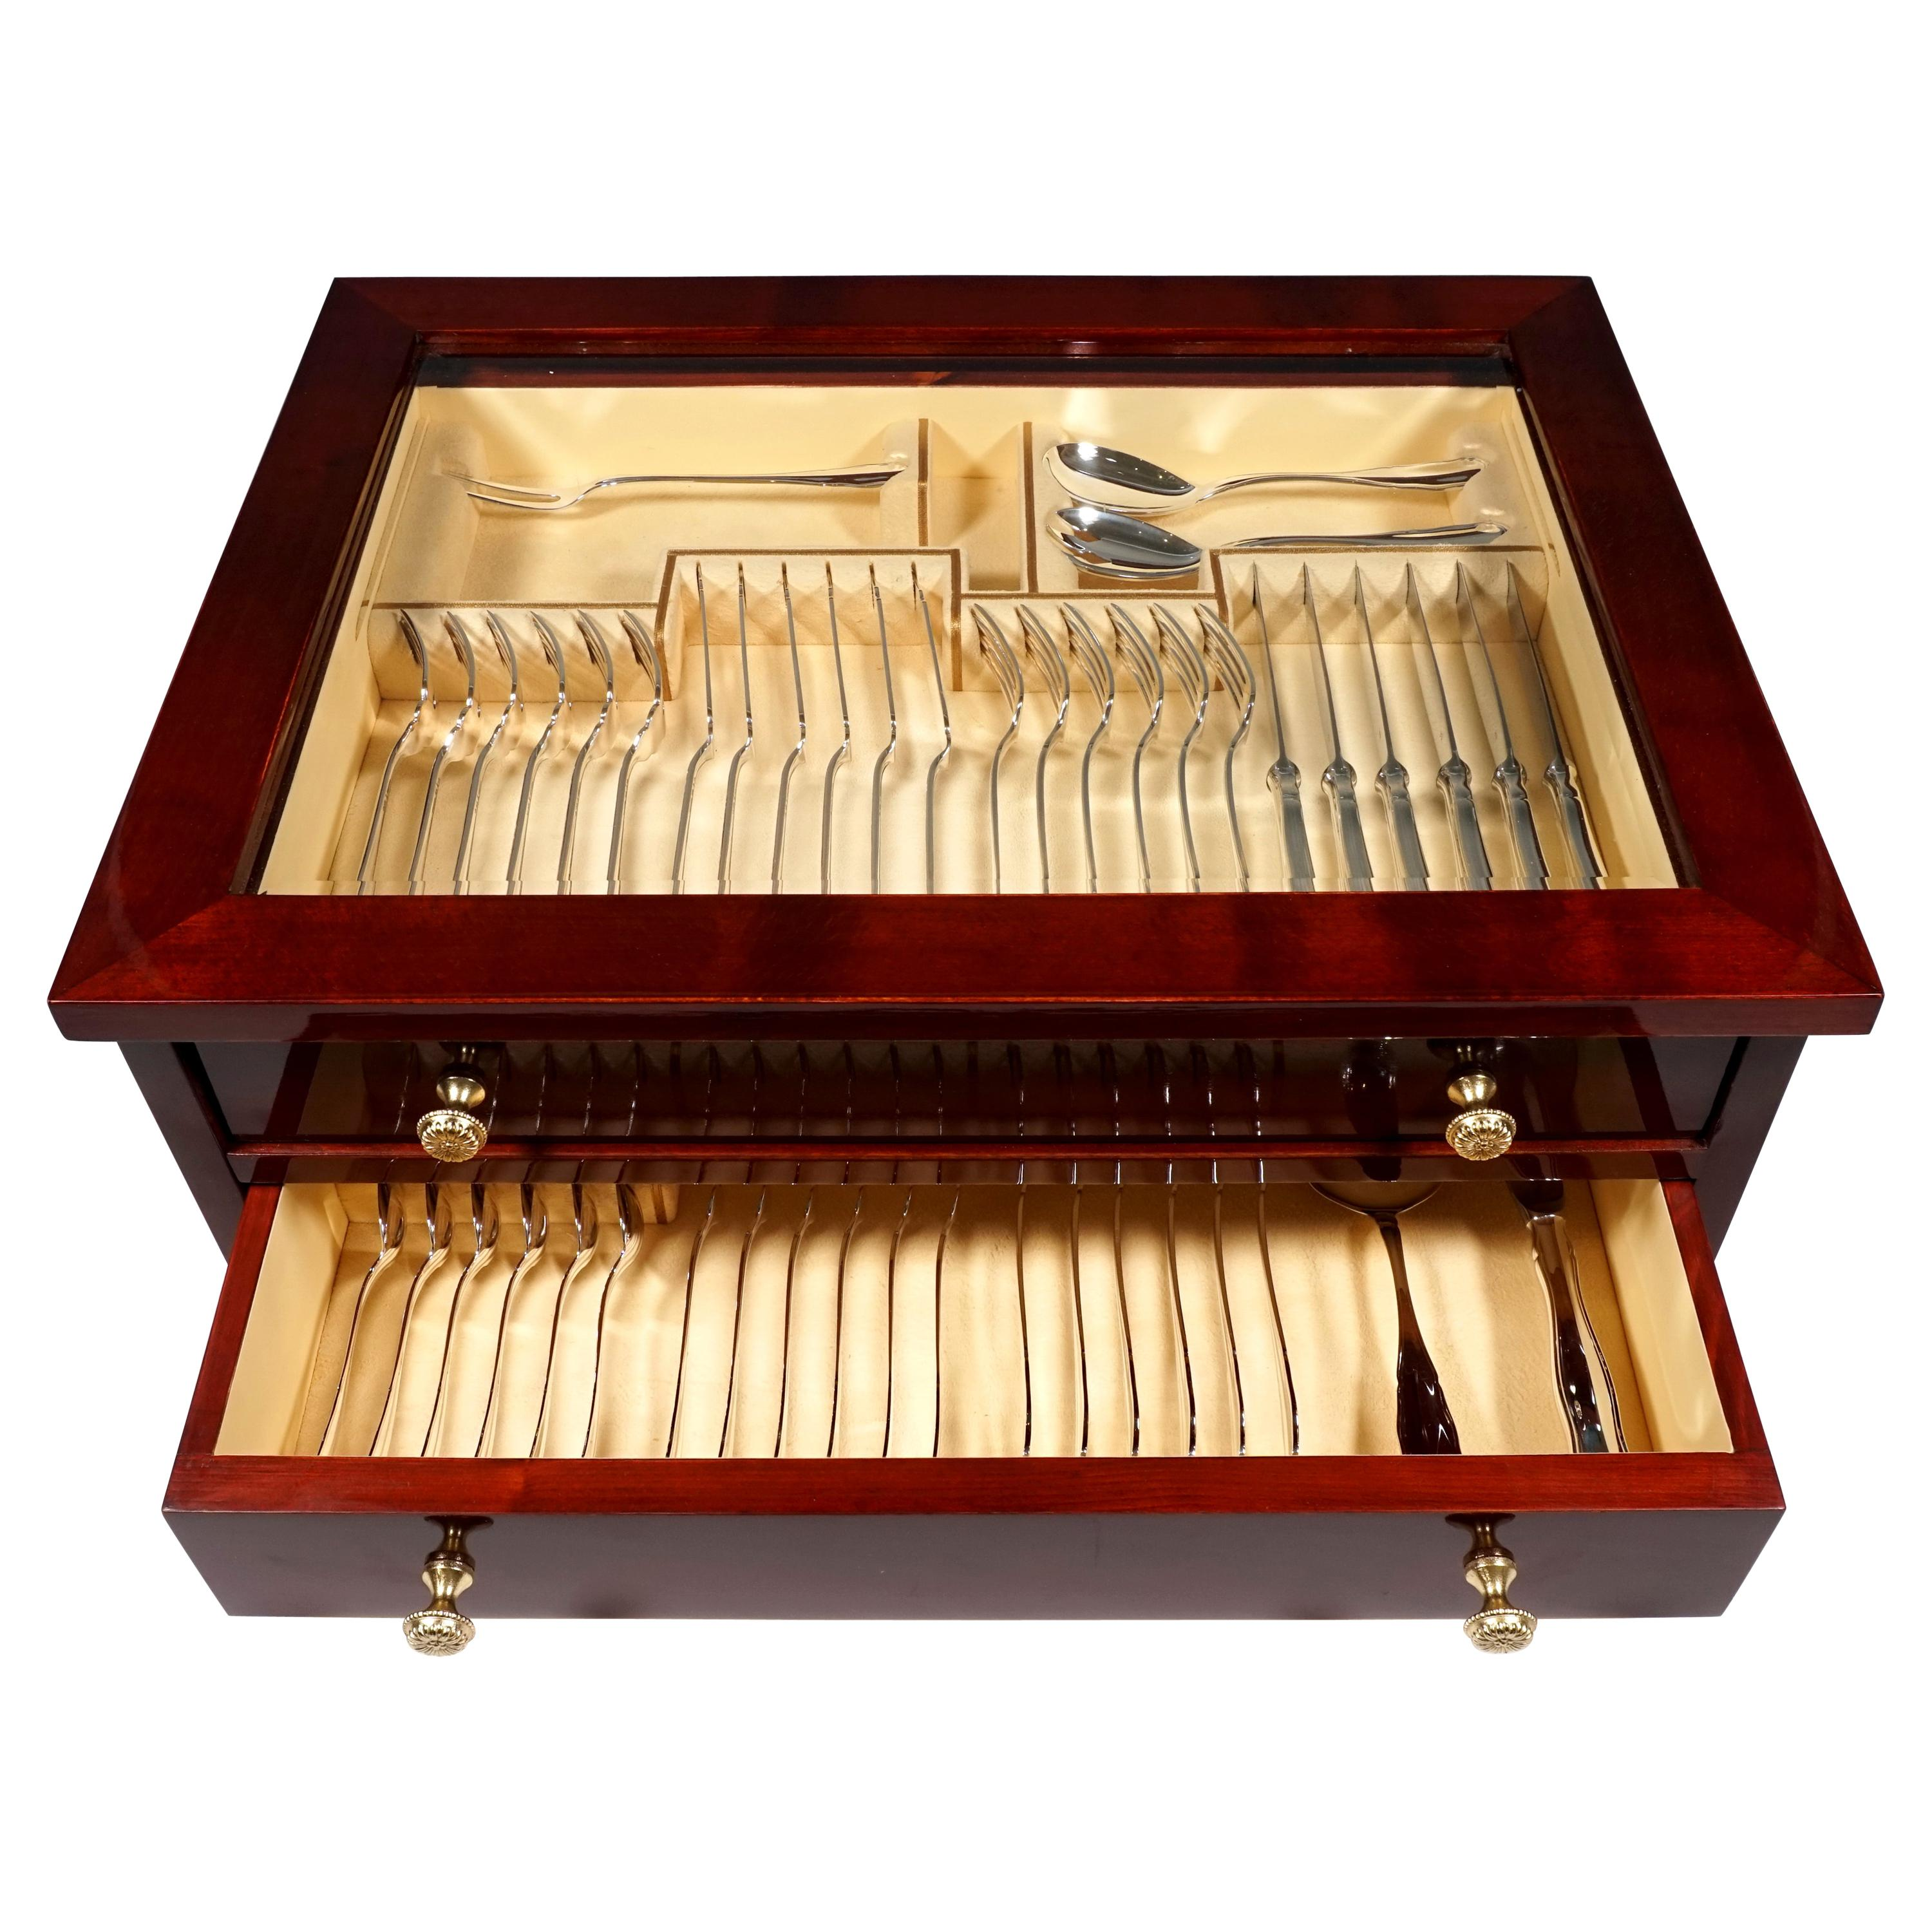 Art Deco Silver Cutlery Set For 6 People in Showcase, Germany & Vienna, ca 1925